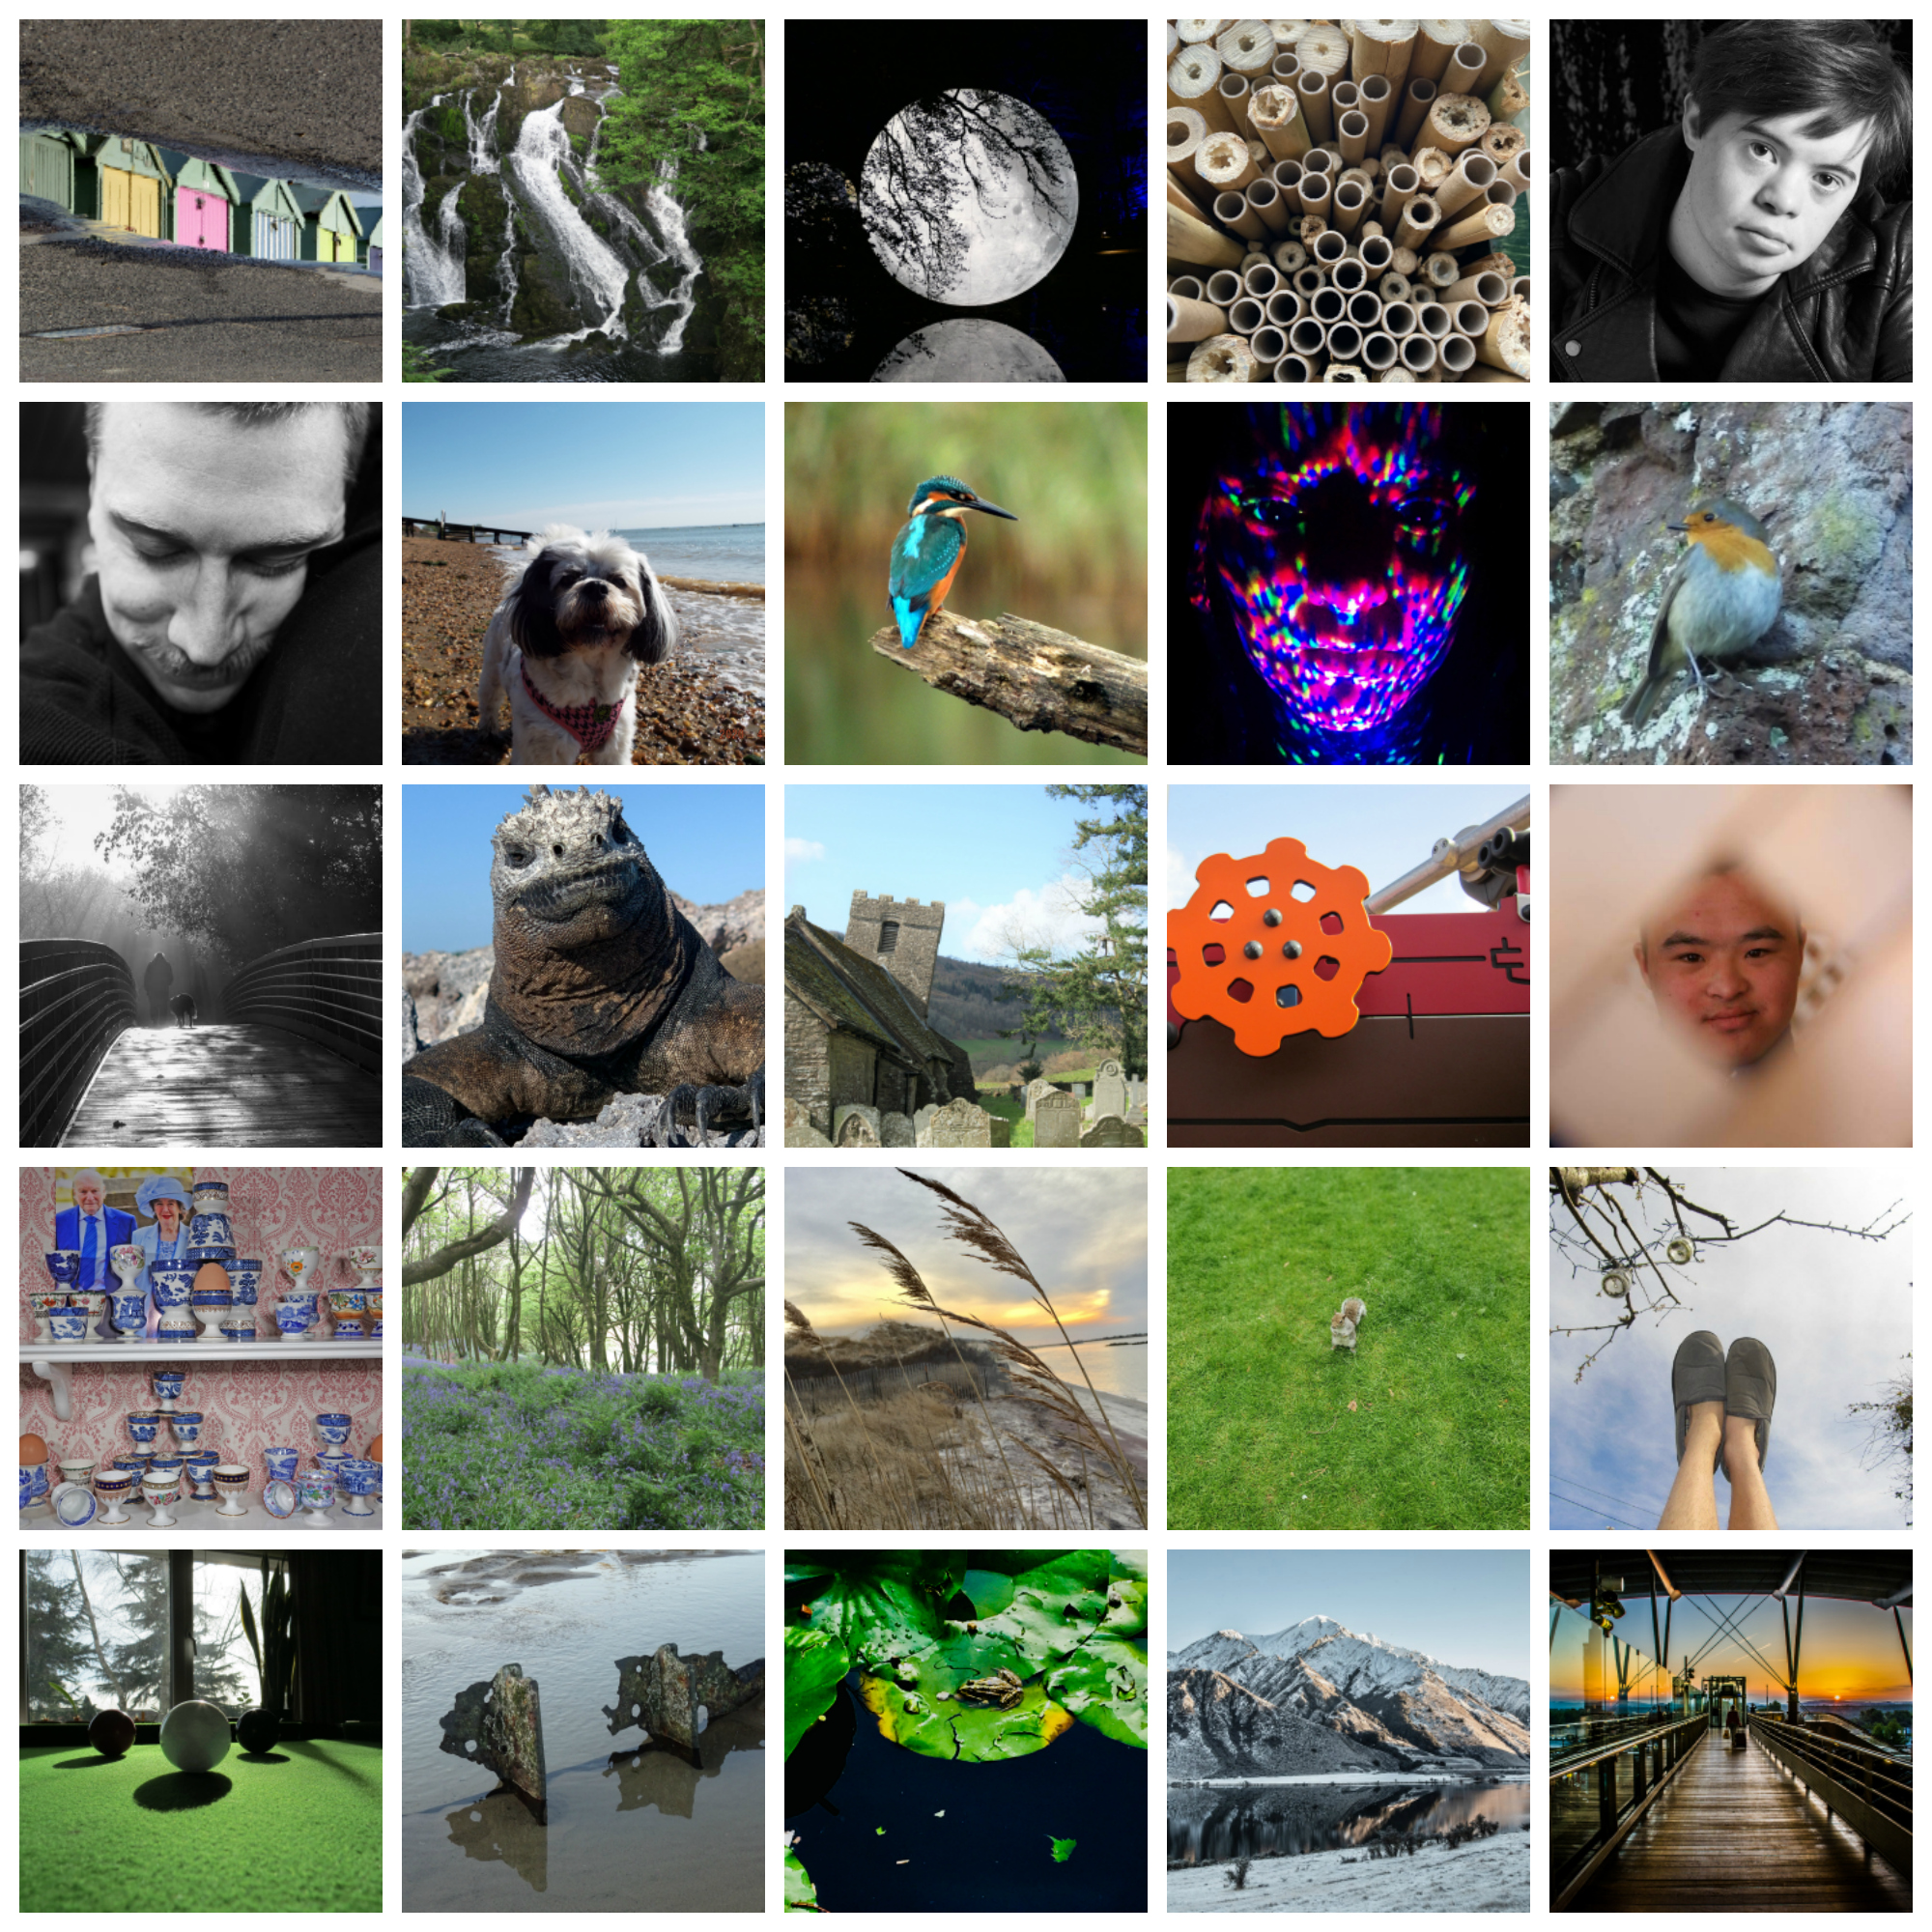 Great entries in global contest for photographers with Down's Syndrome - Amateur Photographer